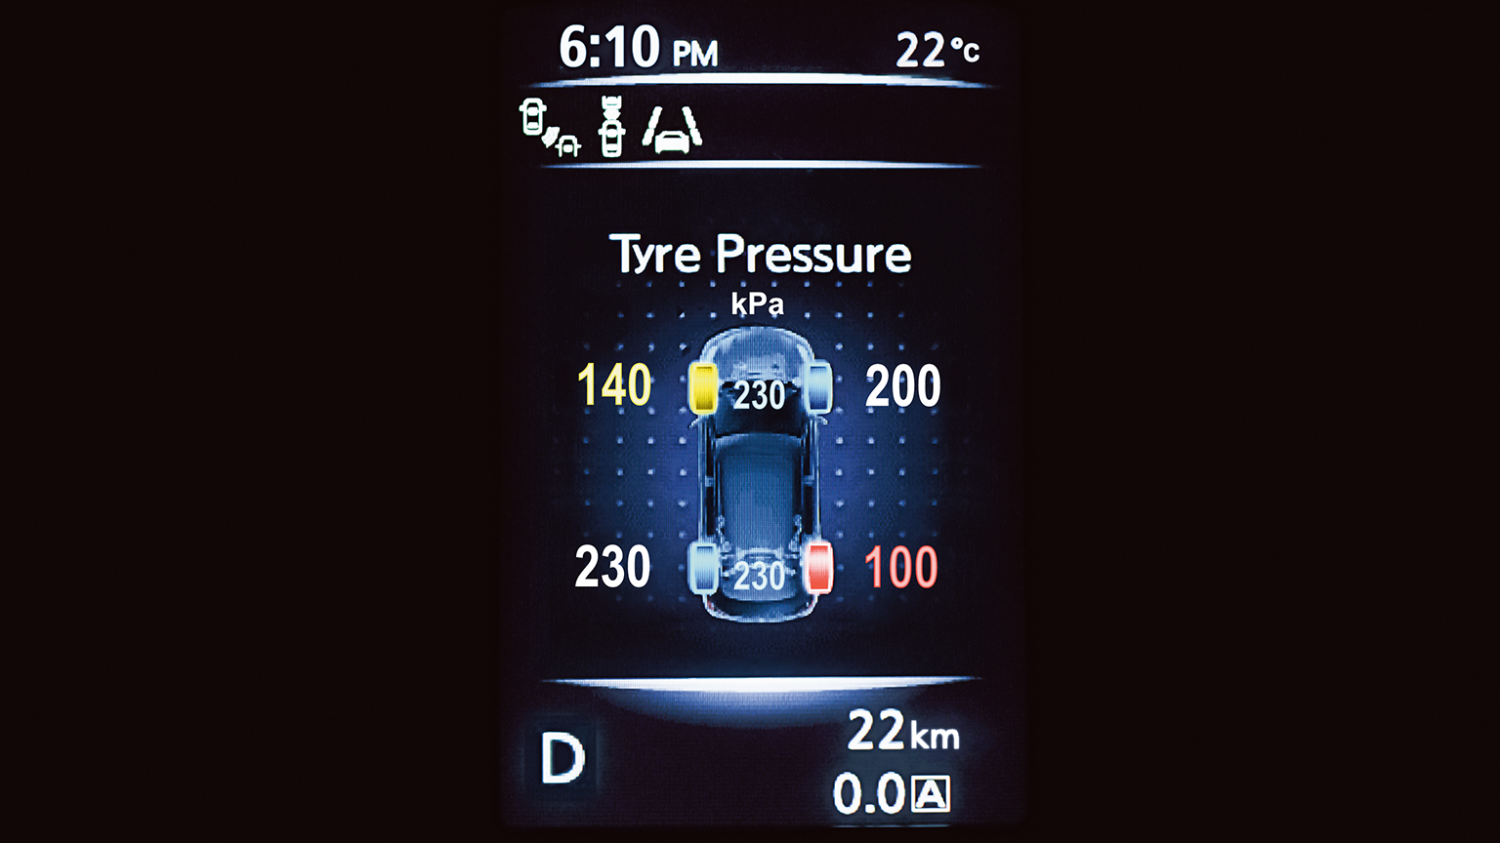 Nissan X-Trail - Tyre pressure system display